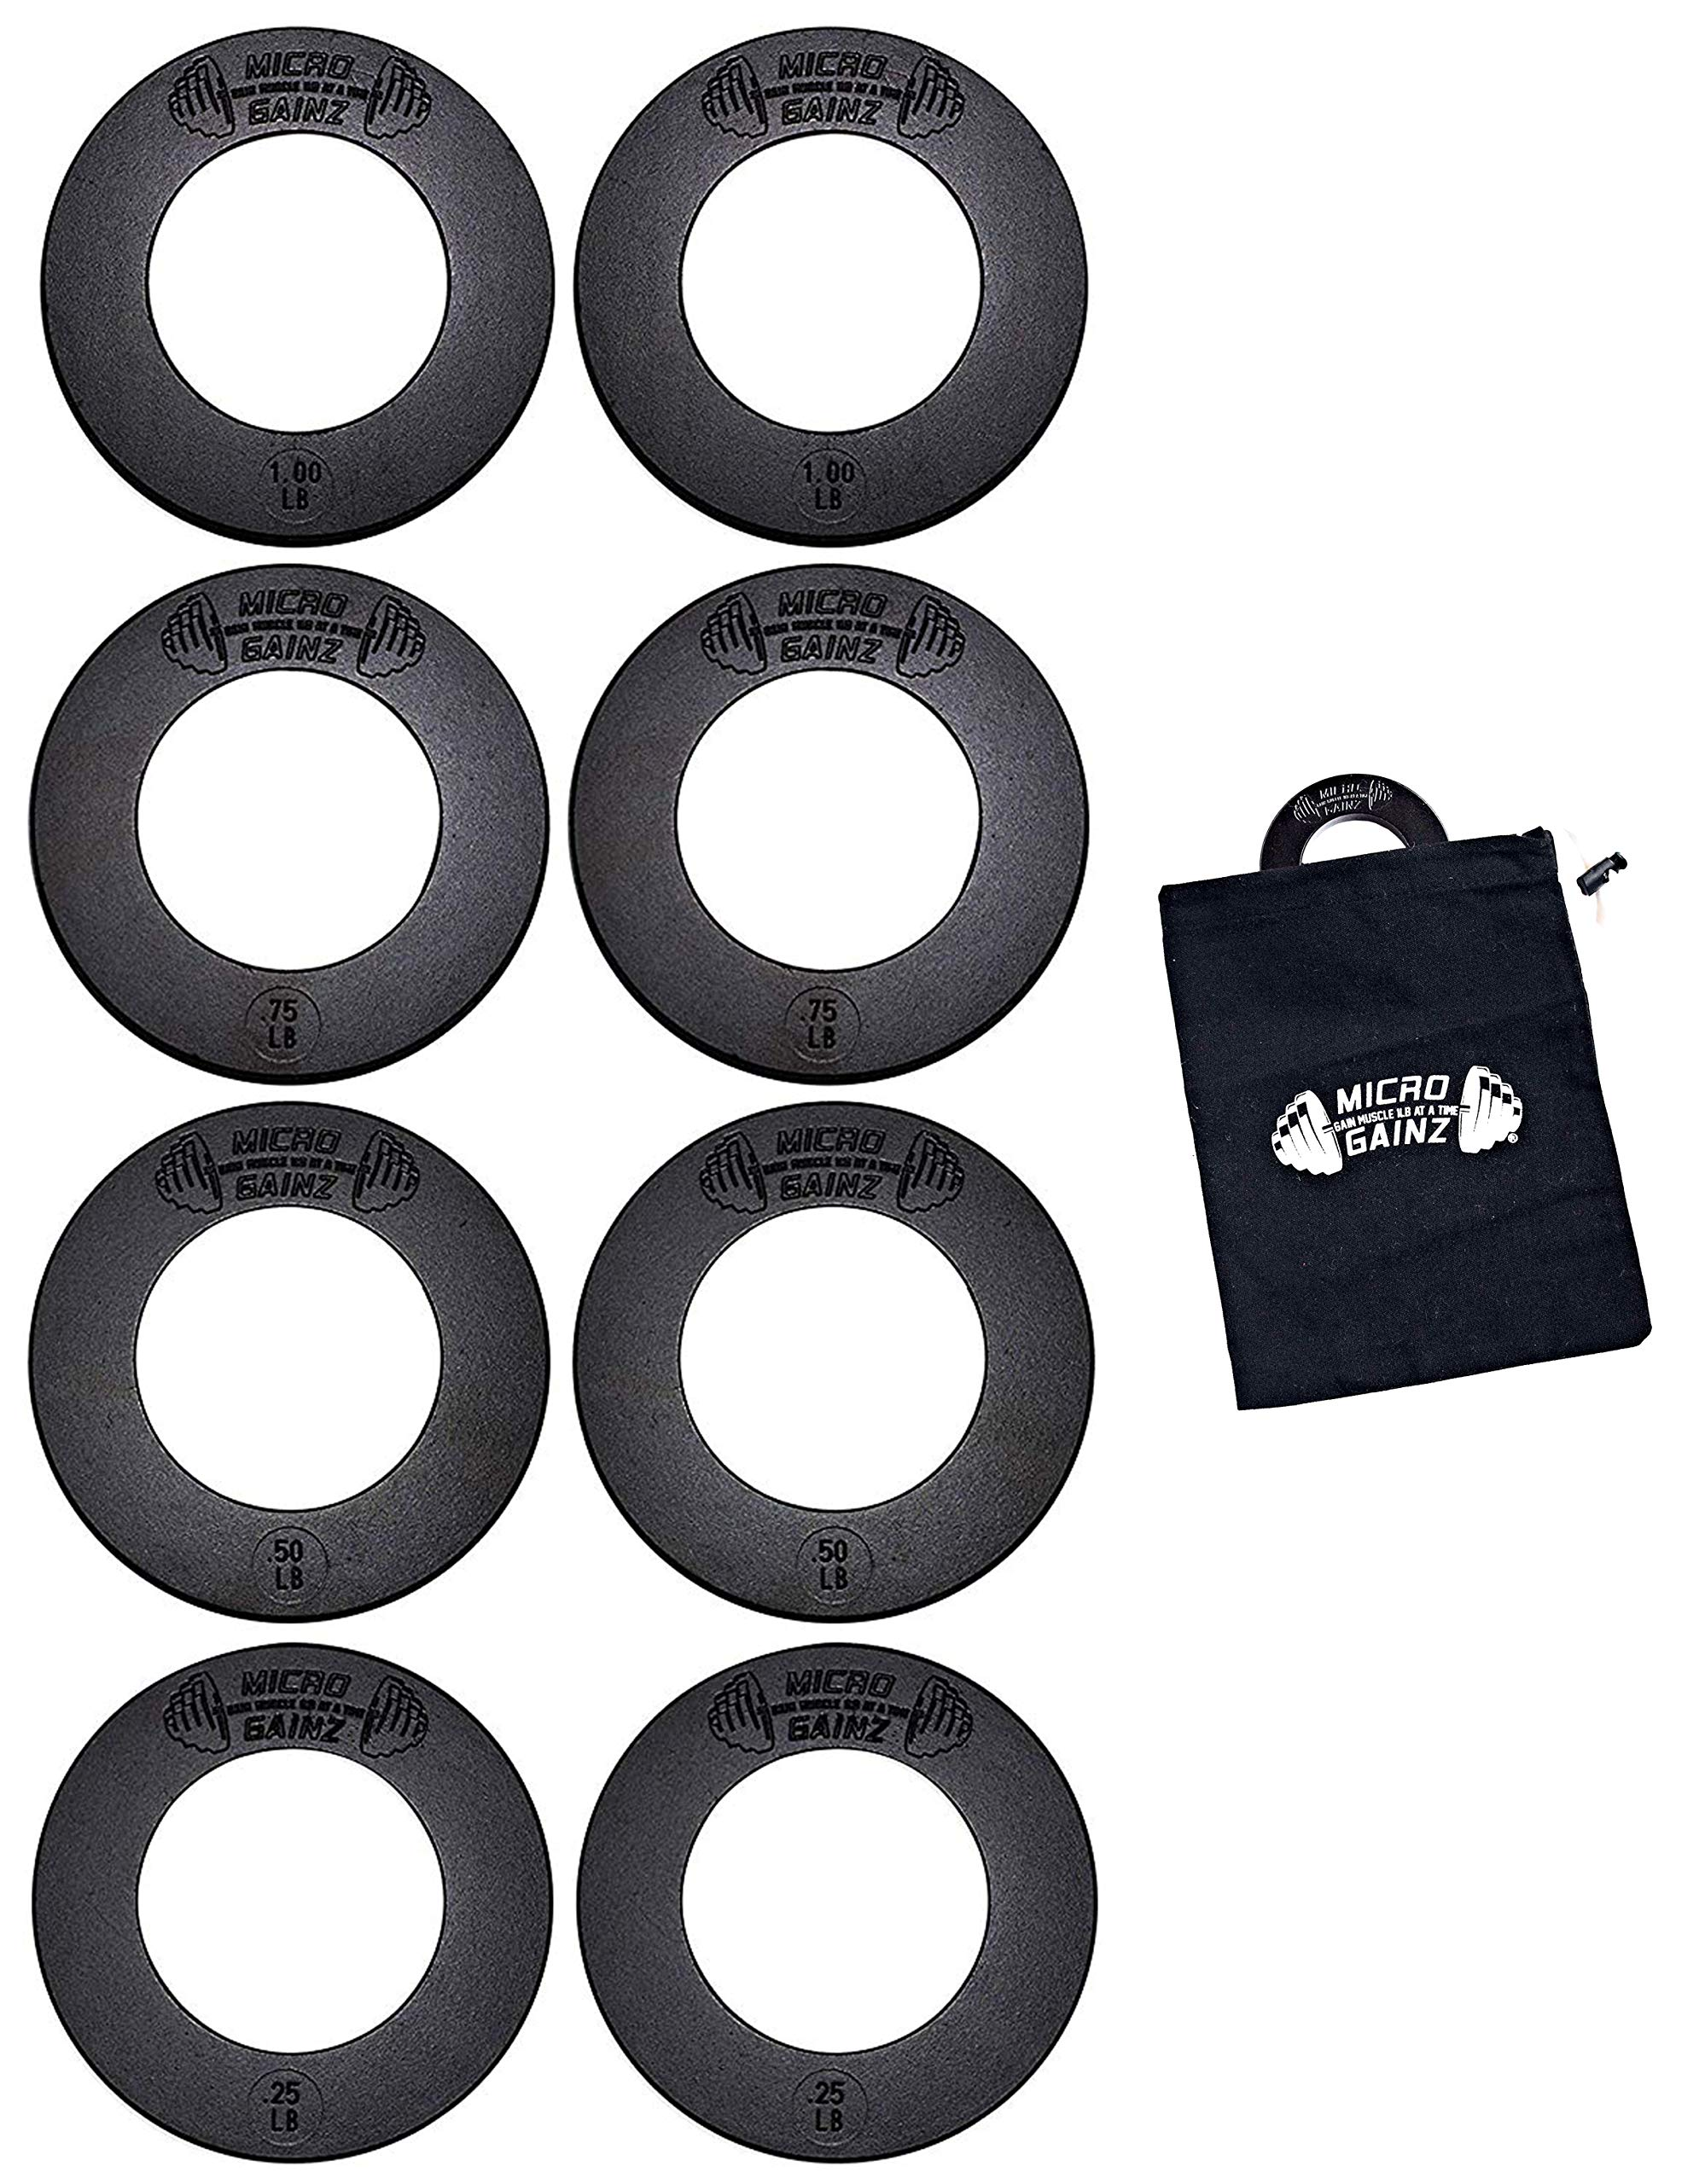 USA Made Micro Gainz Olympic Fractional Weight Plate Set of .25LB-.50LB-.75LB-1LB Plates (8 Plate Set) - Designed for Olympic Barbells, Used for Strength Training and Micro Loading w/Carrying Bag